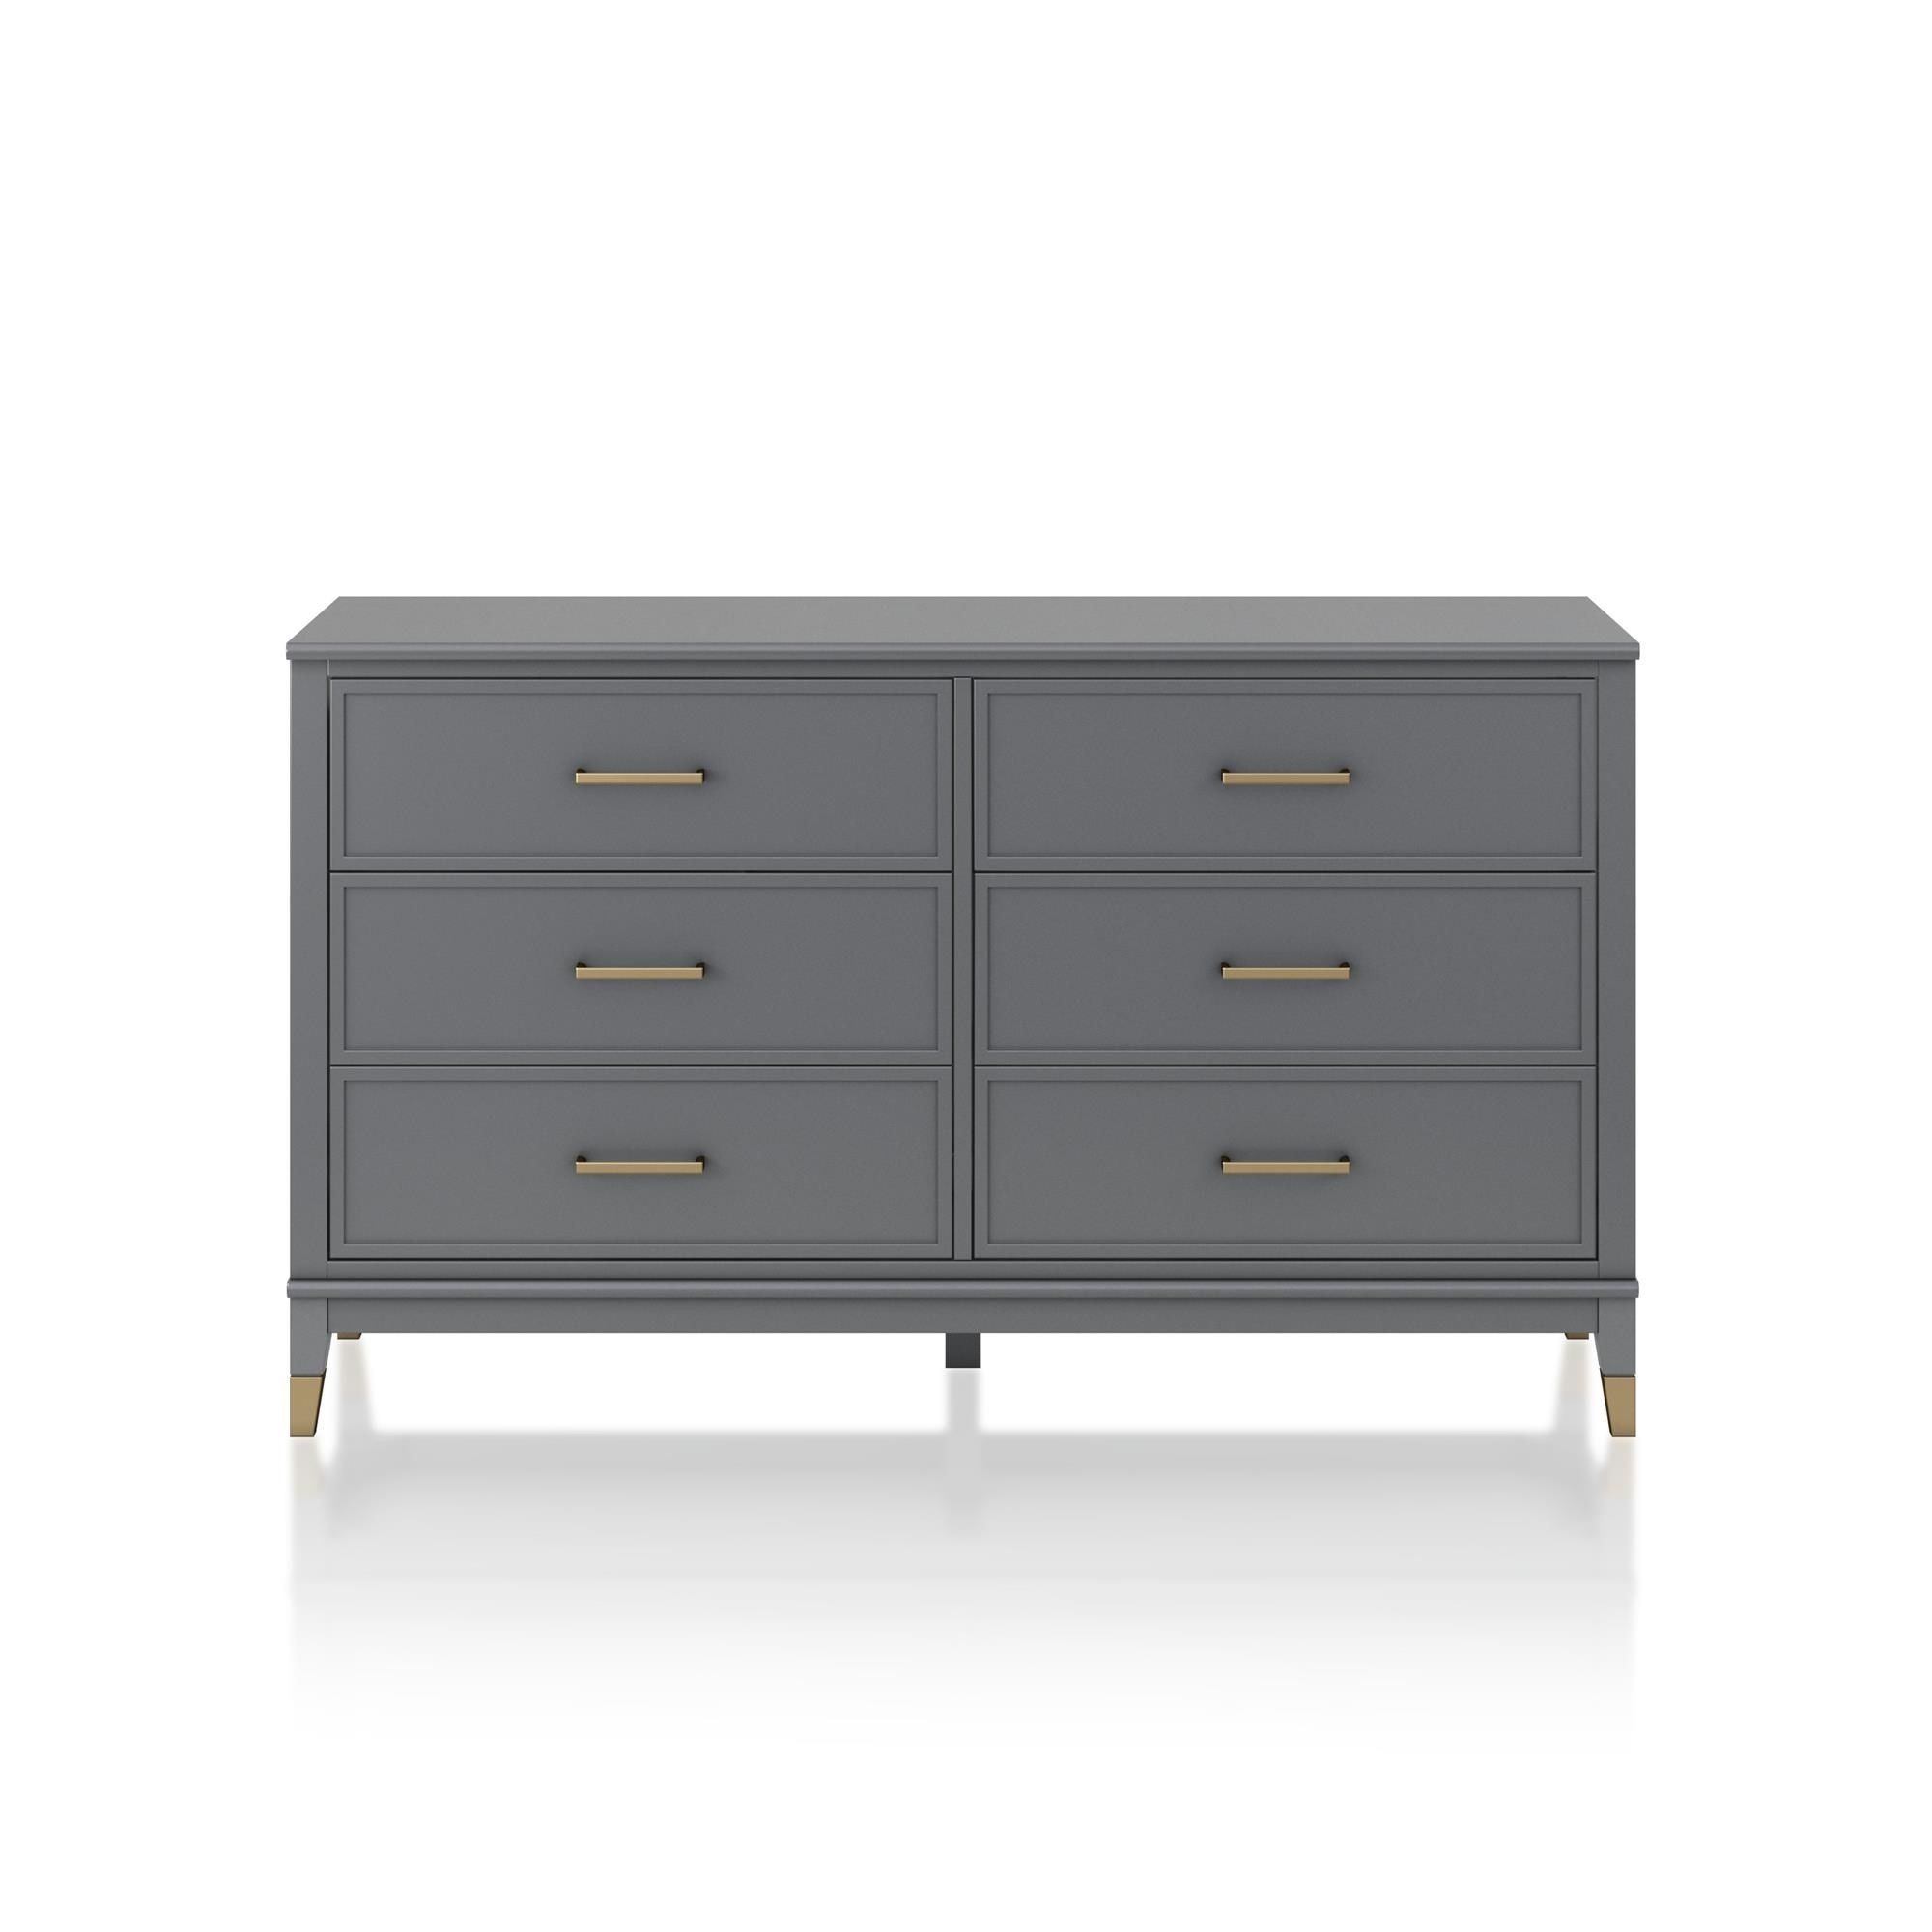 Overstock Com Online Shopping Bedding Furniture Electronics Jewelry Clothing More Dresser Drawers 6 Drawer Dresser Furniture [ 2000 x 2000 Pixel ]